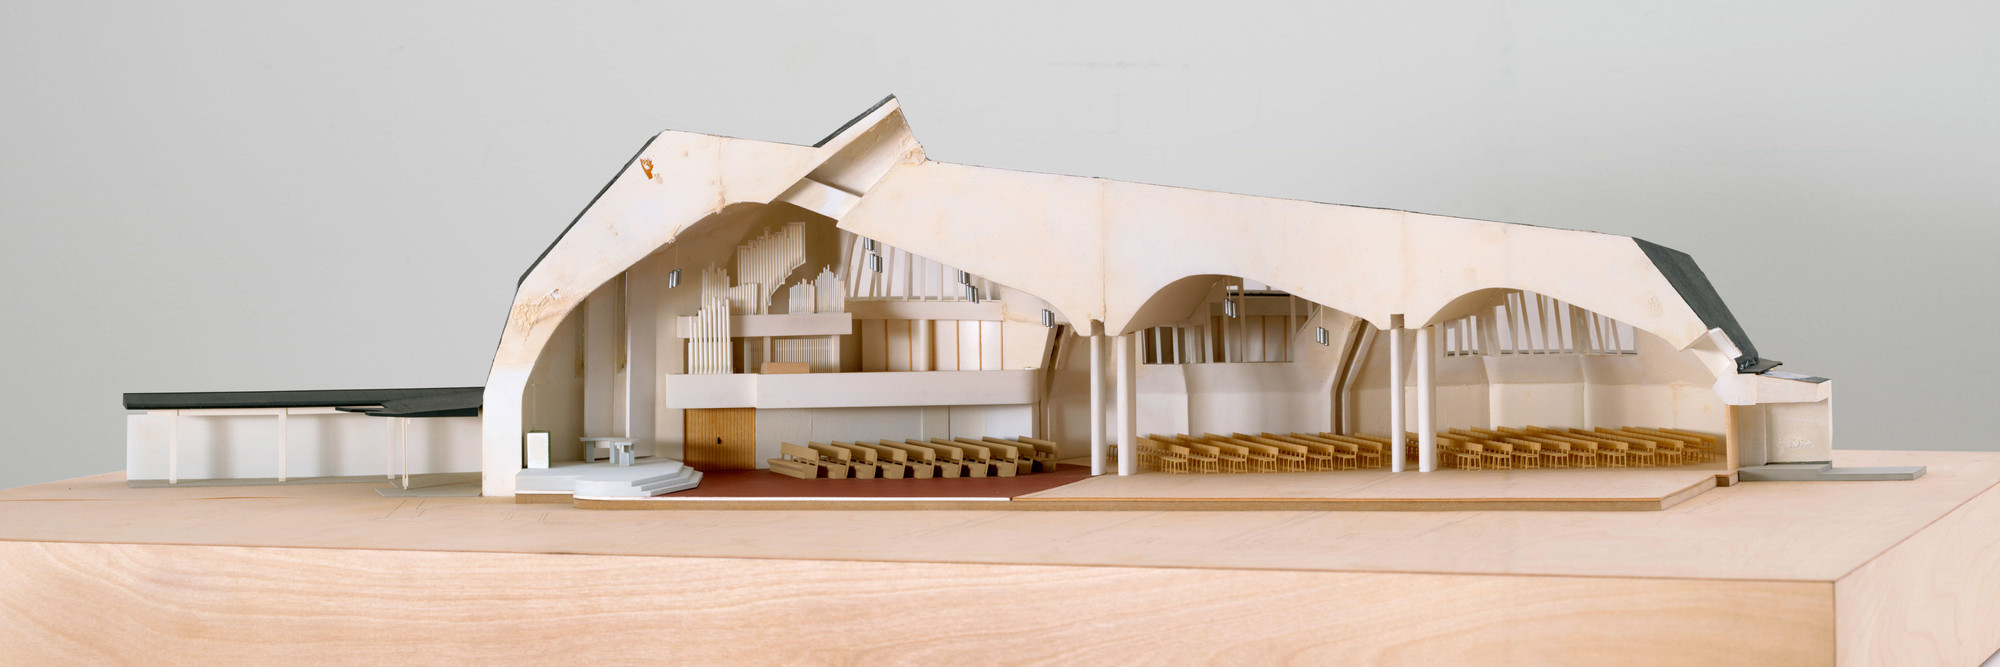 Alvar Aalto. Church of the Three Crosses, Vuoksenniska, Imatra, Finland, 1955–58. Plastic, cardboard, and synthetic polymer paint, 15 × 30 × 54″ (38.1 × 76.2 × 137.1 cm). Model Makers: Richard Sturgeon, Derek Conde. Purchase